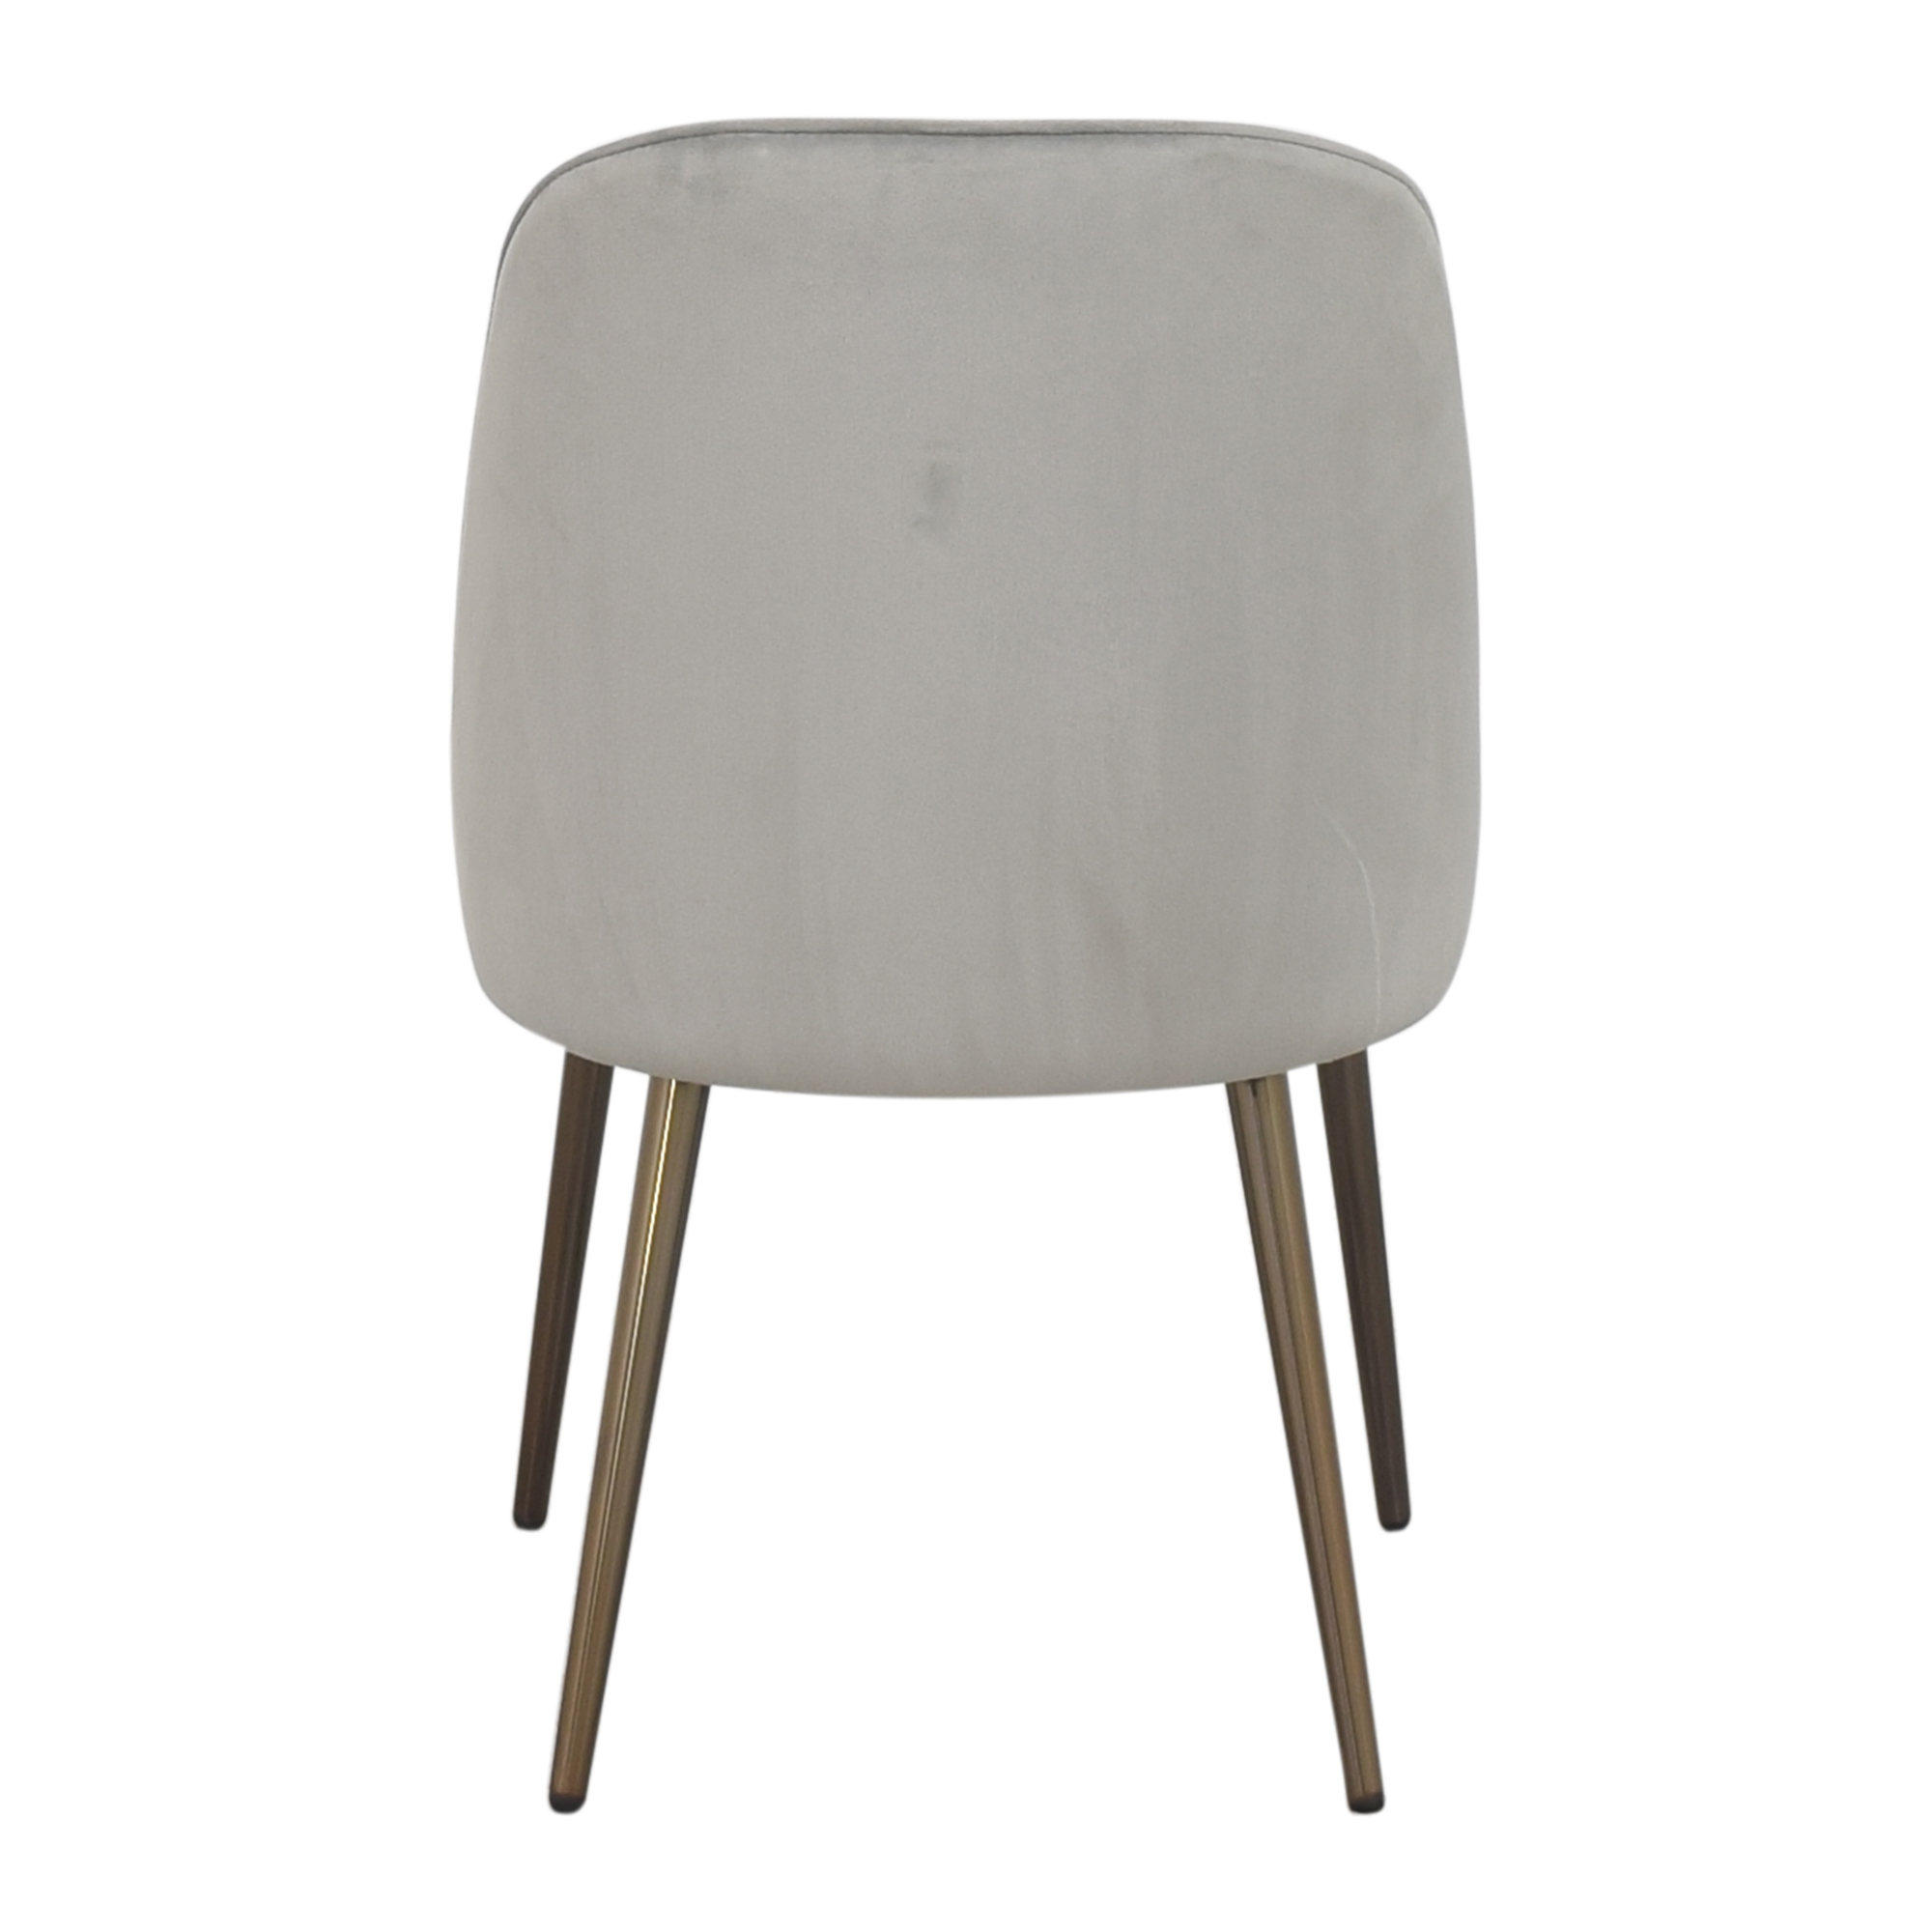 West Elm West Elm Mid Century Upholstered Dining Chair Chairs